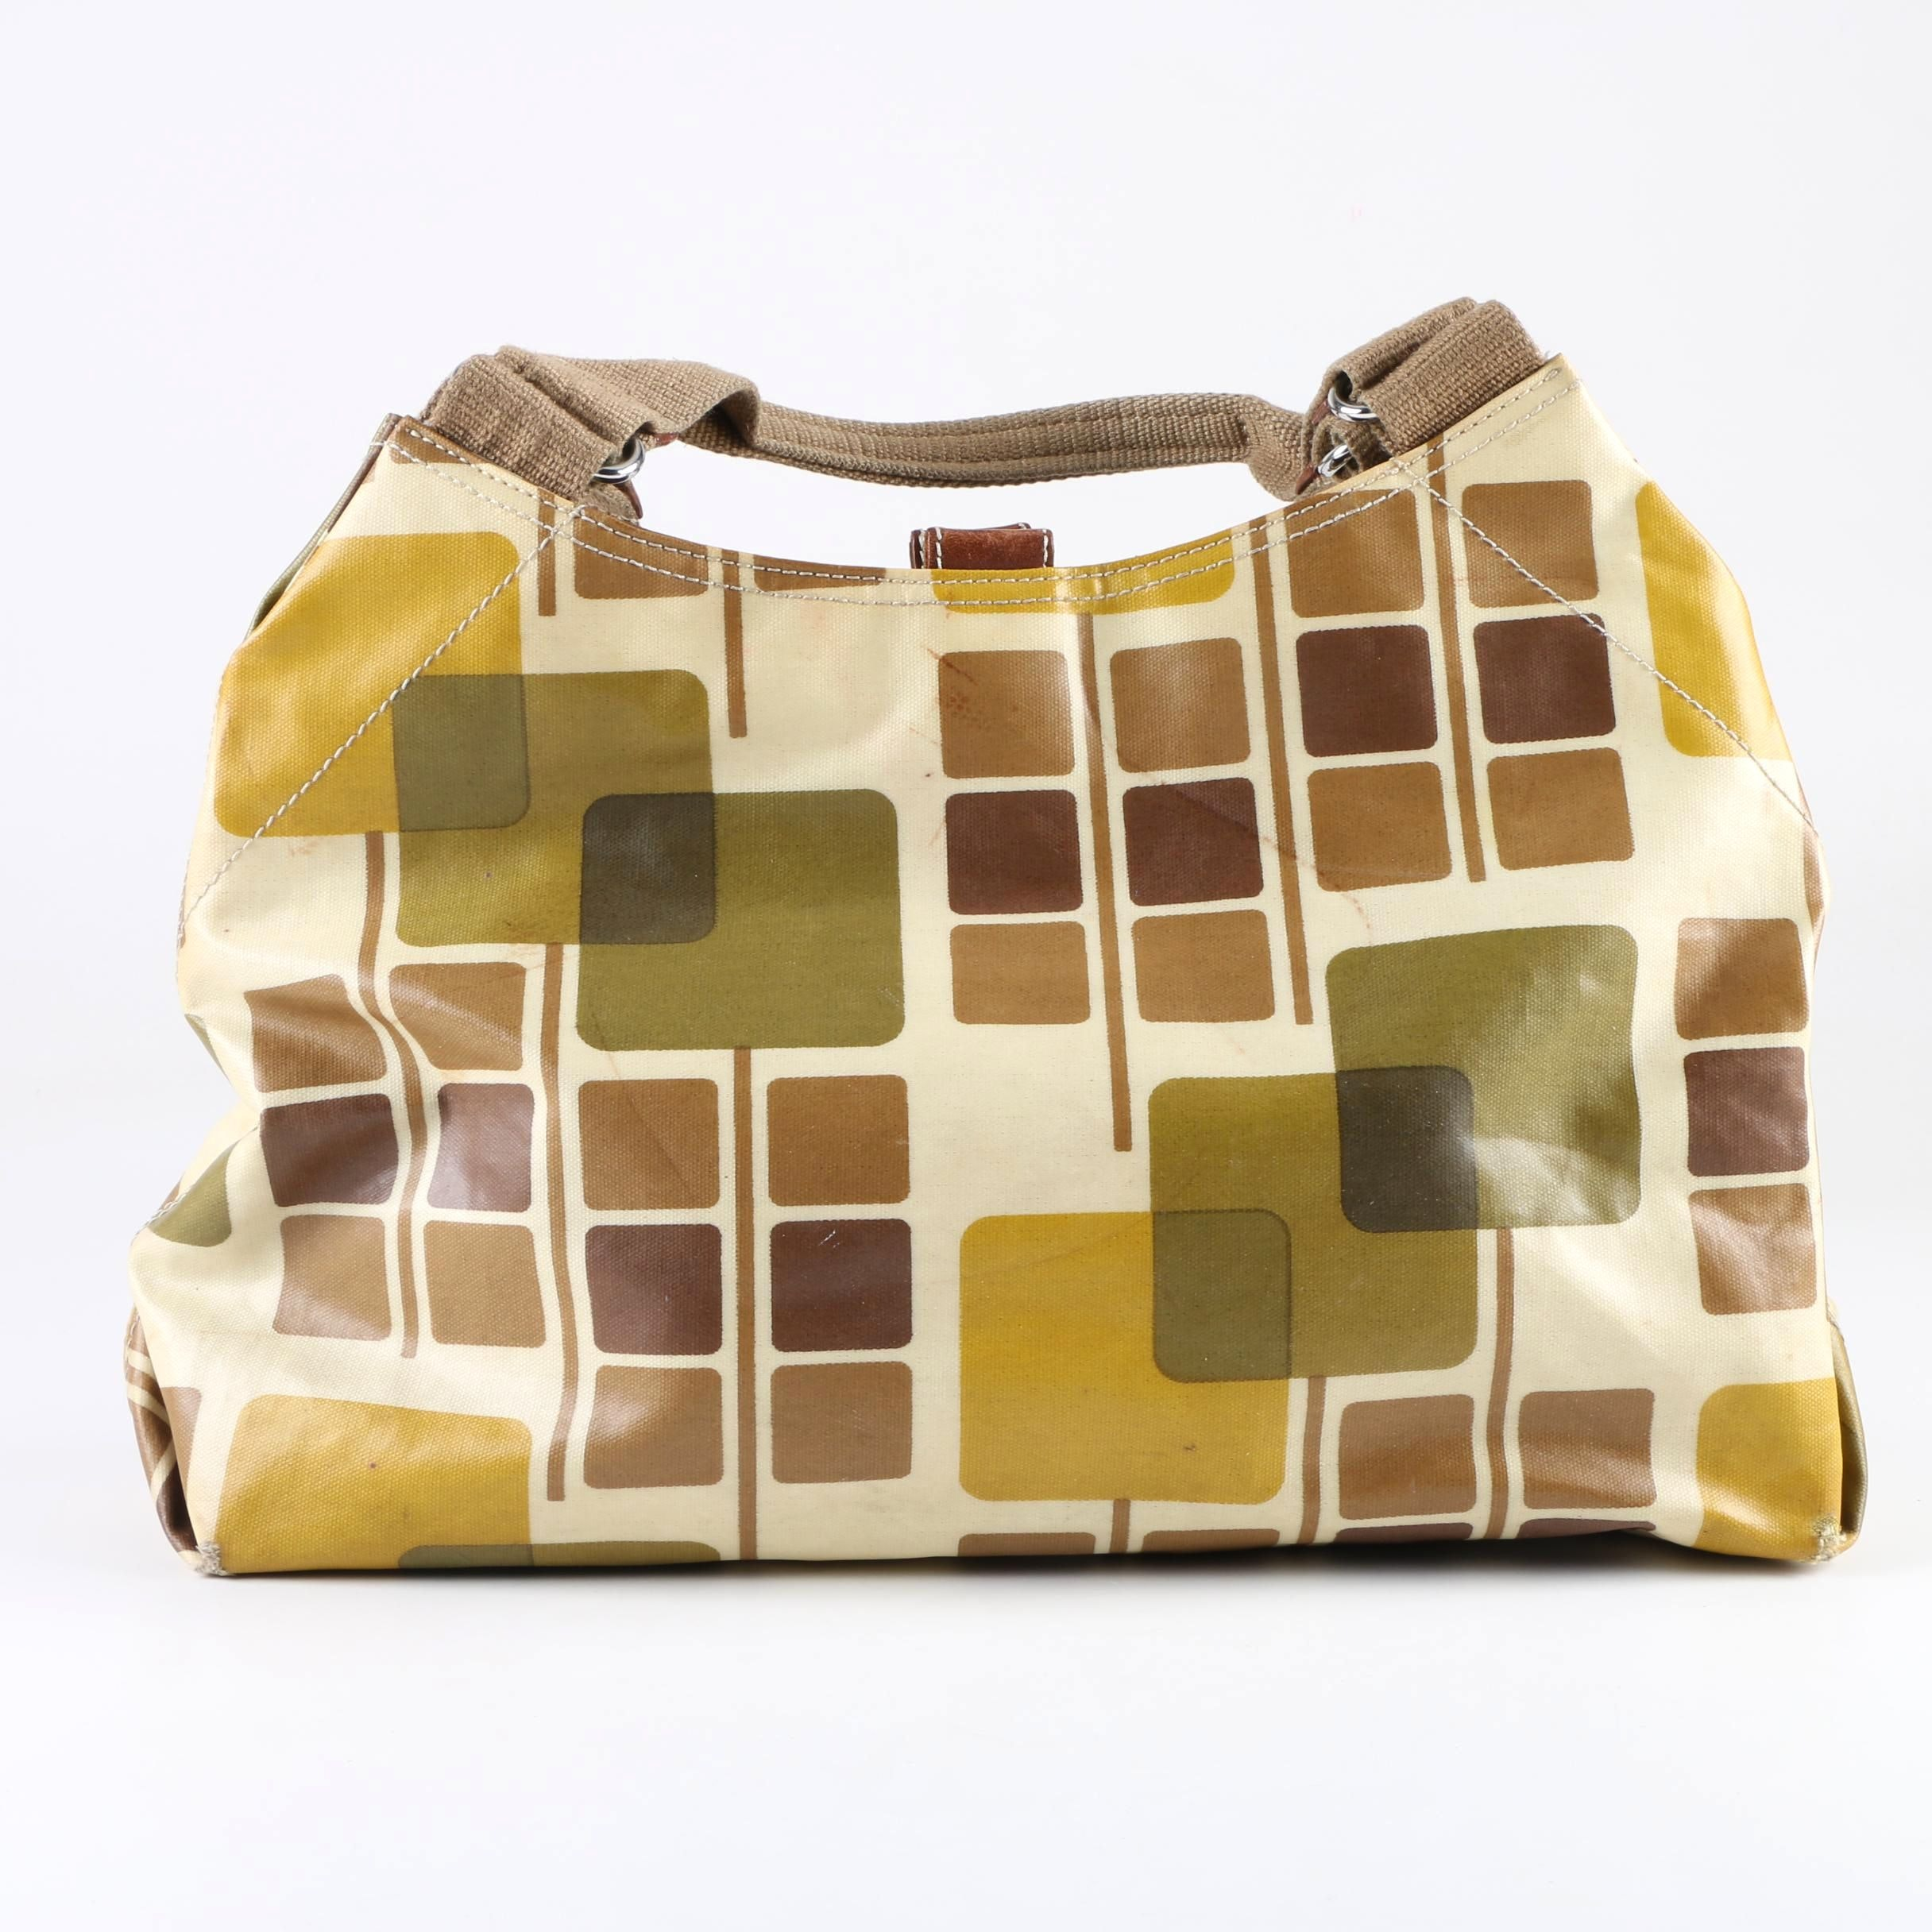 Orla Kiely Mod Print Coated Canvas Handbag